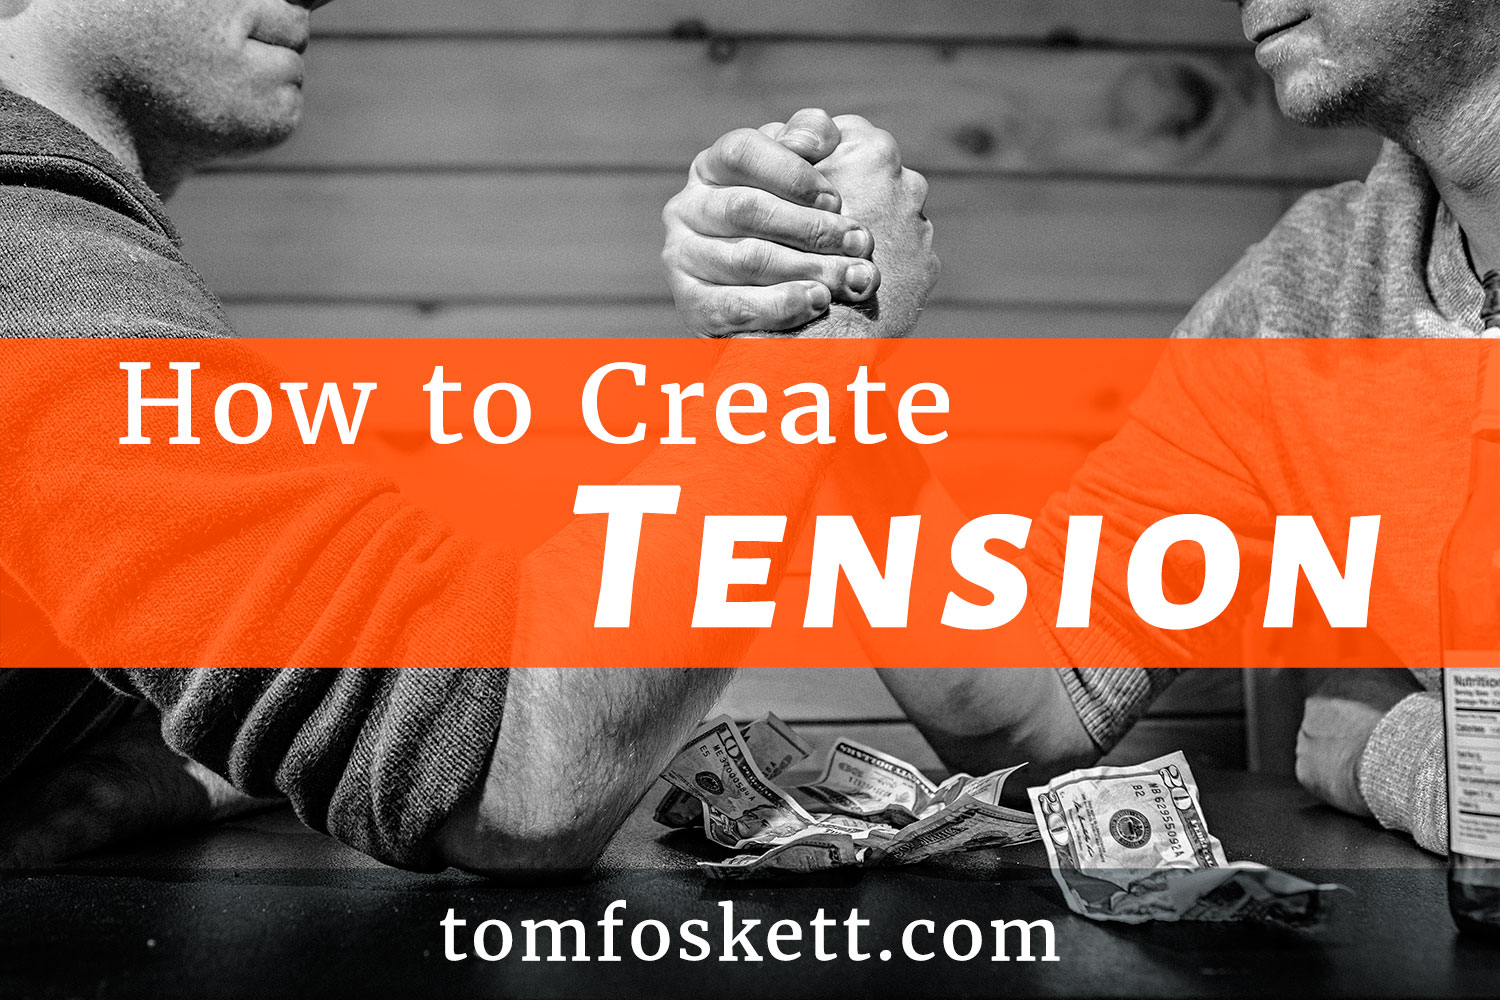 How to create tension by Tom Foskett